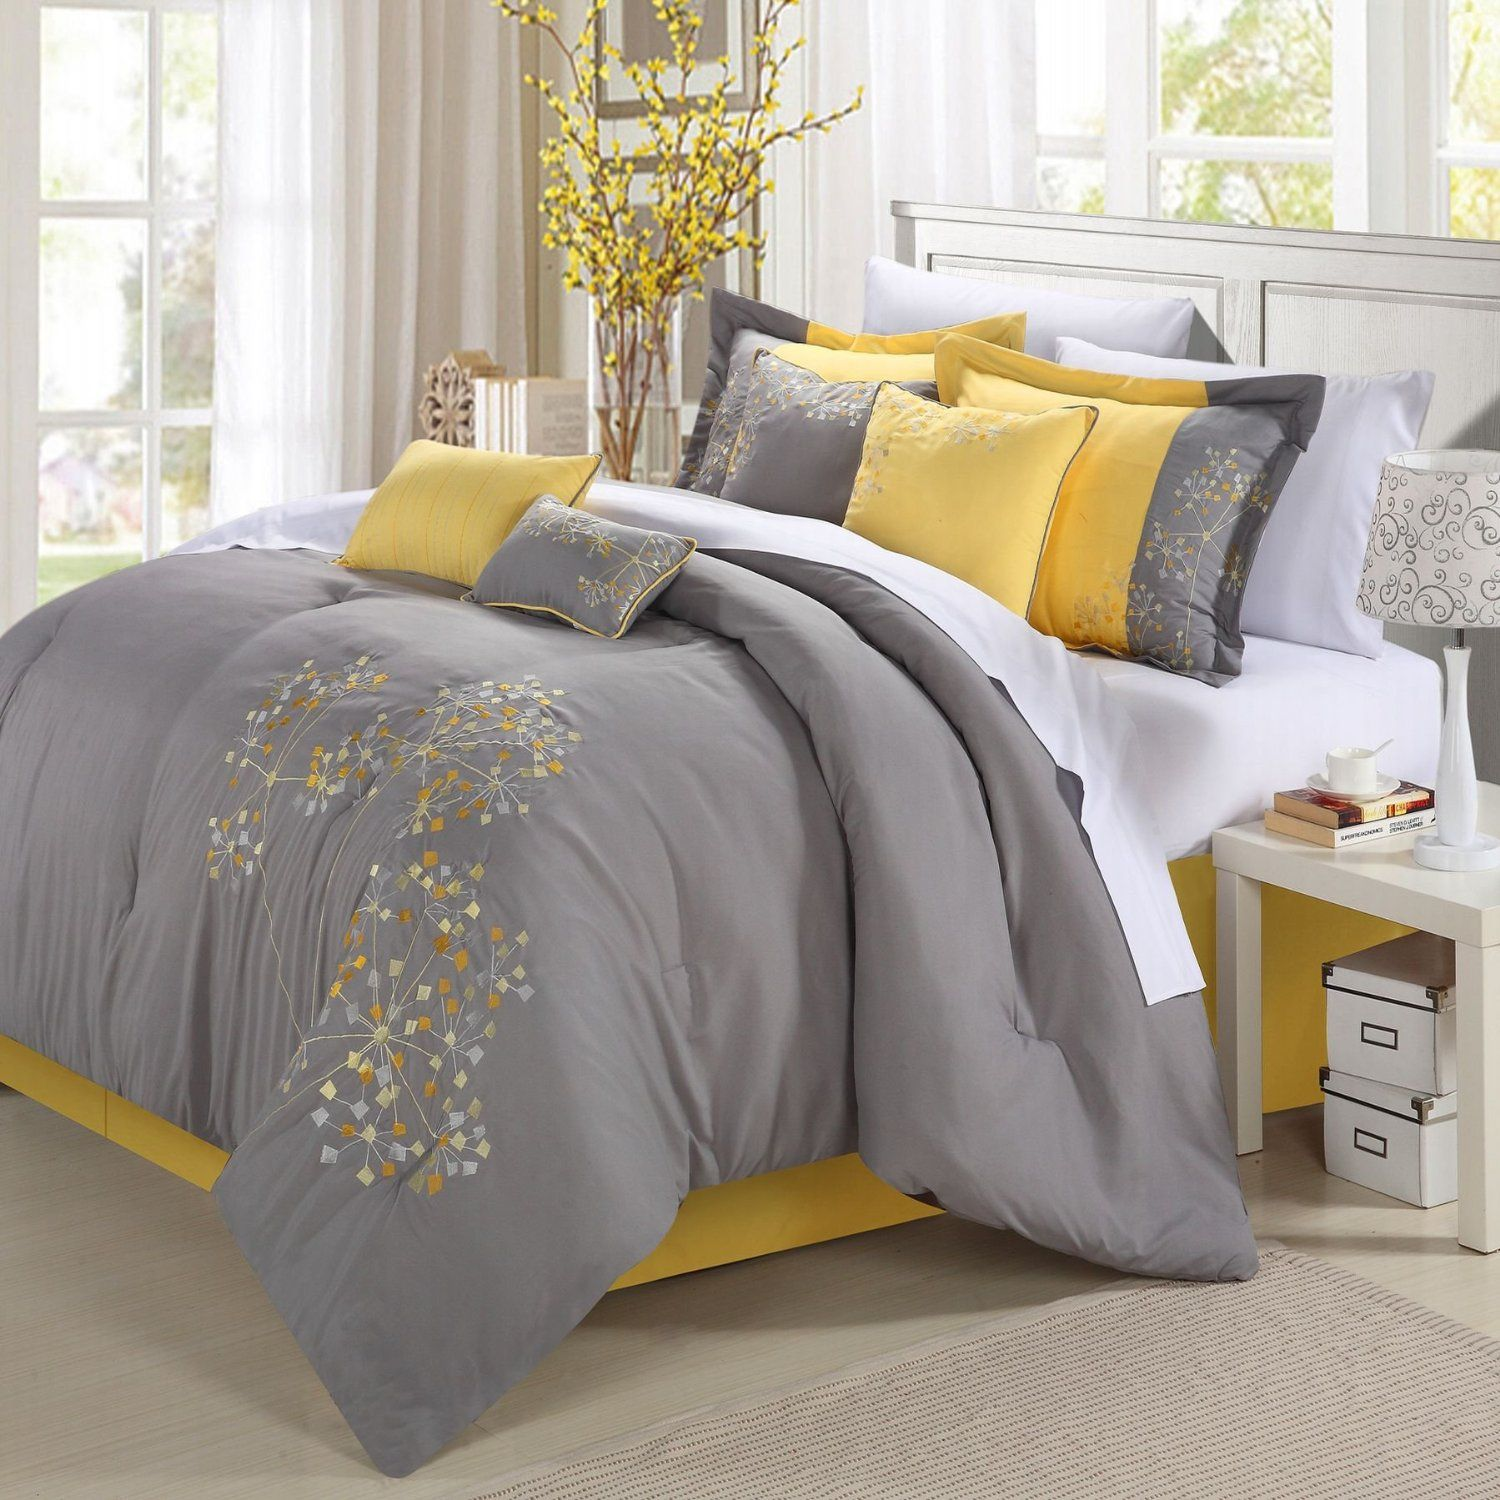 gray queen sweetgalas cover cheap dark light and grey white quilt king comforter winter covers designs twin duvet yellow bedding